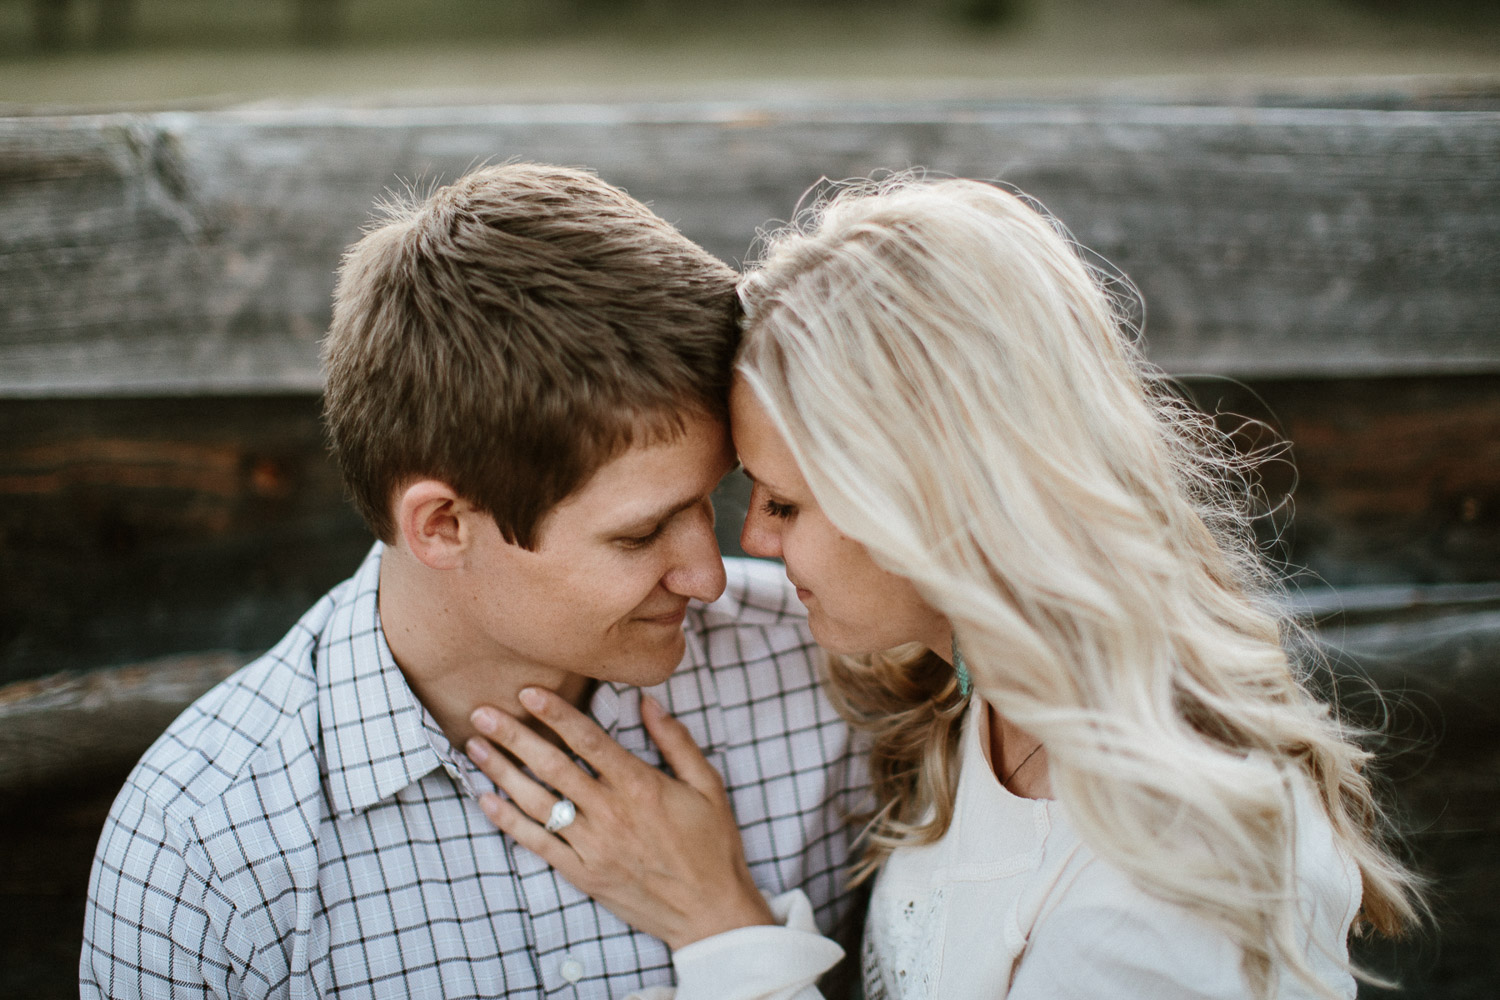 SiouxFalls_BlackHills_Adventure_Engagement_Wedding_Photographer_32.jpg